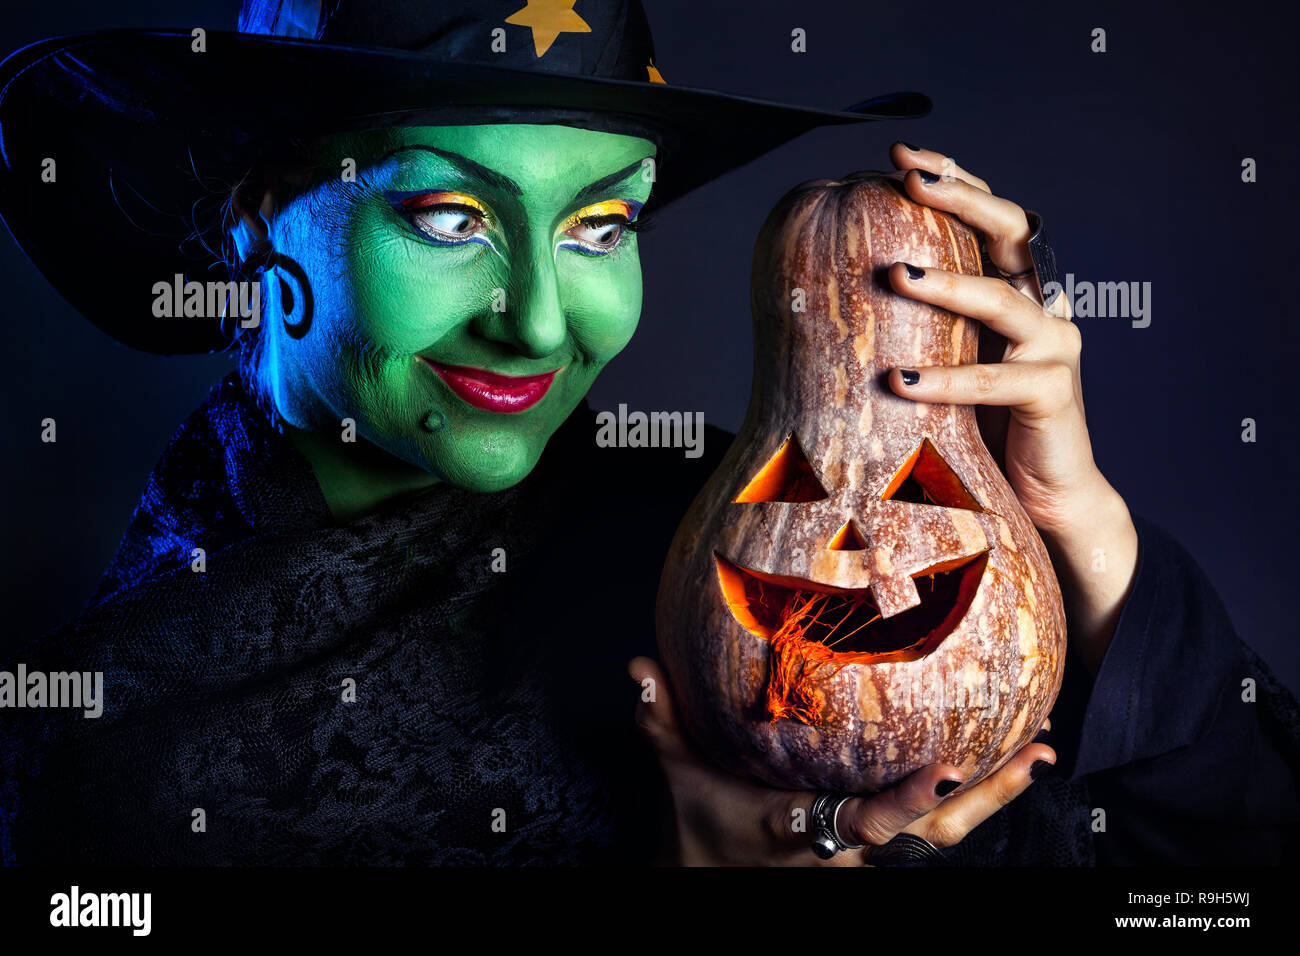 Witch with green skin holding carved Halloween pumpkin at dark background Stock Photo